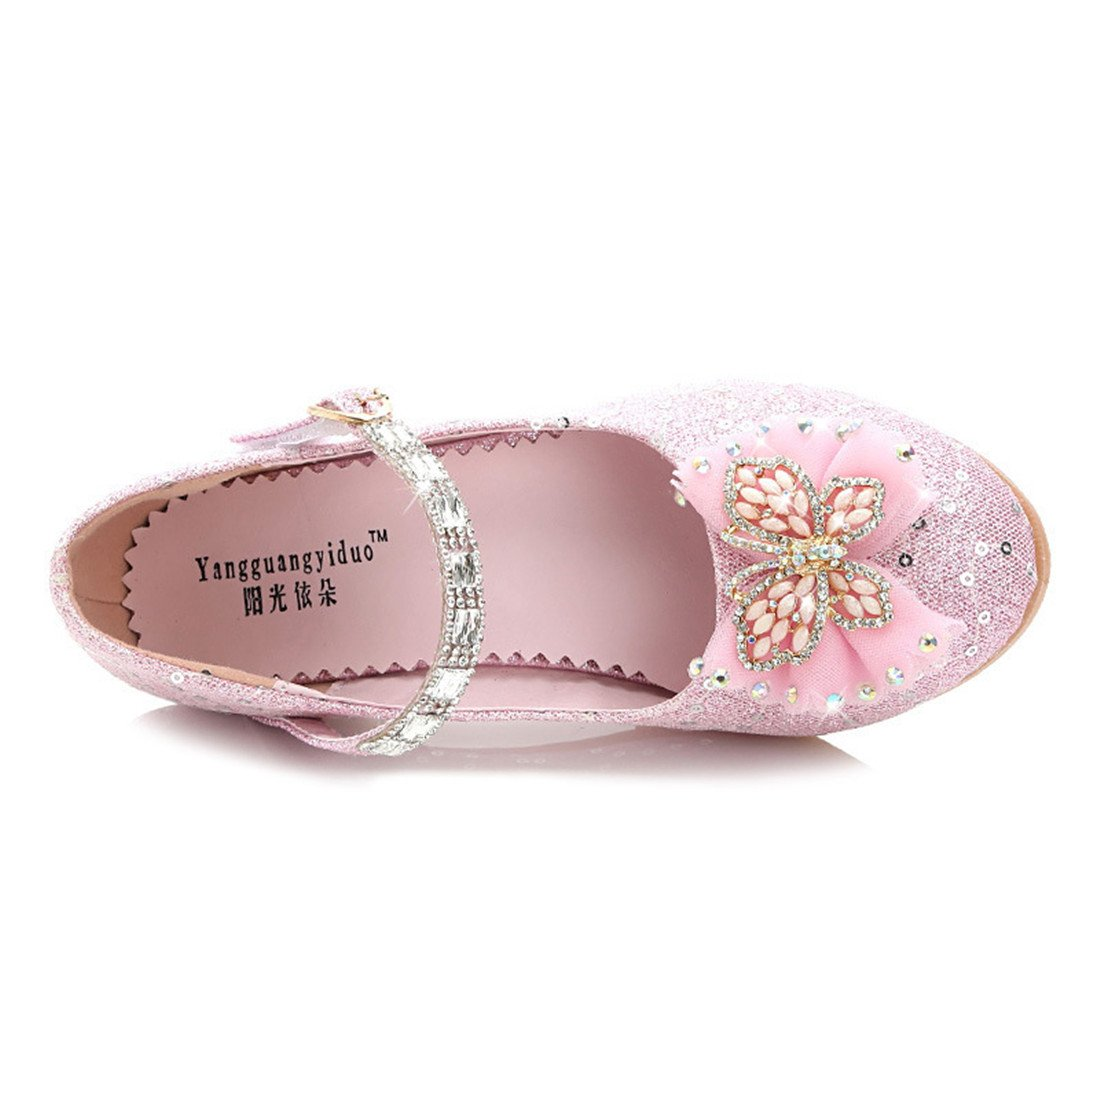 Toddler Littlle Big Kids Girls Glitter Wedding Shoes Dancing Party Mary Jane Flat Shoes Pink Size 2 by YANGXING (Image #2)